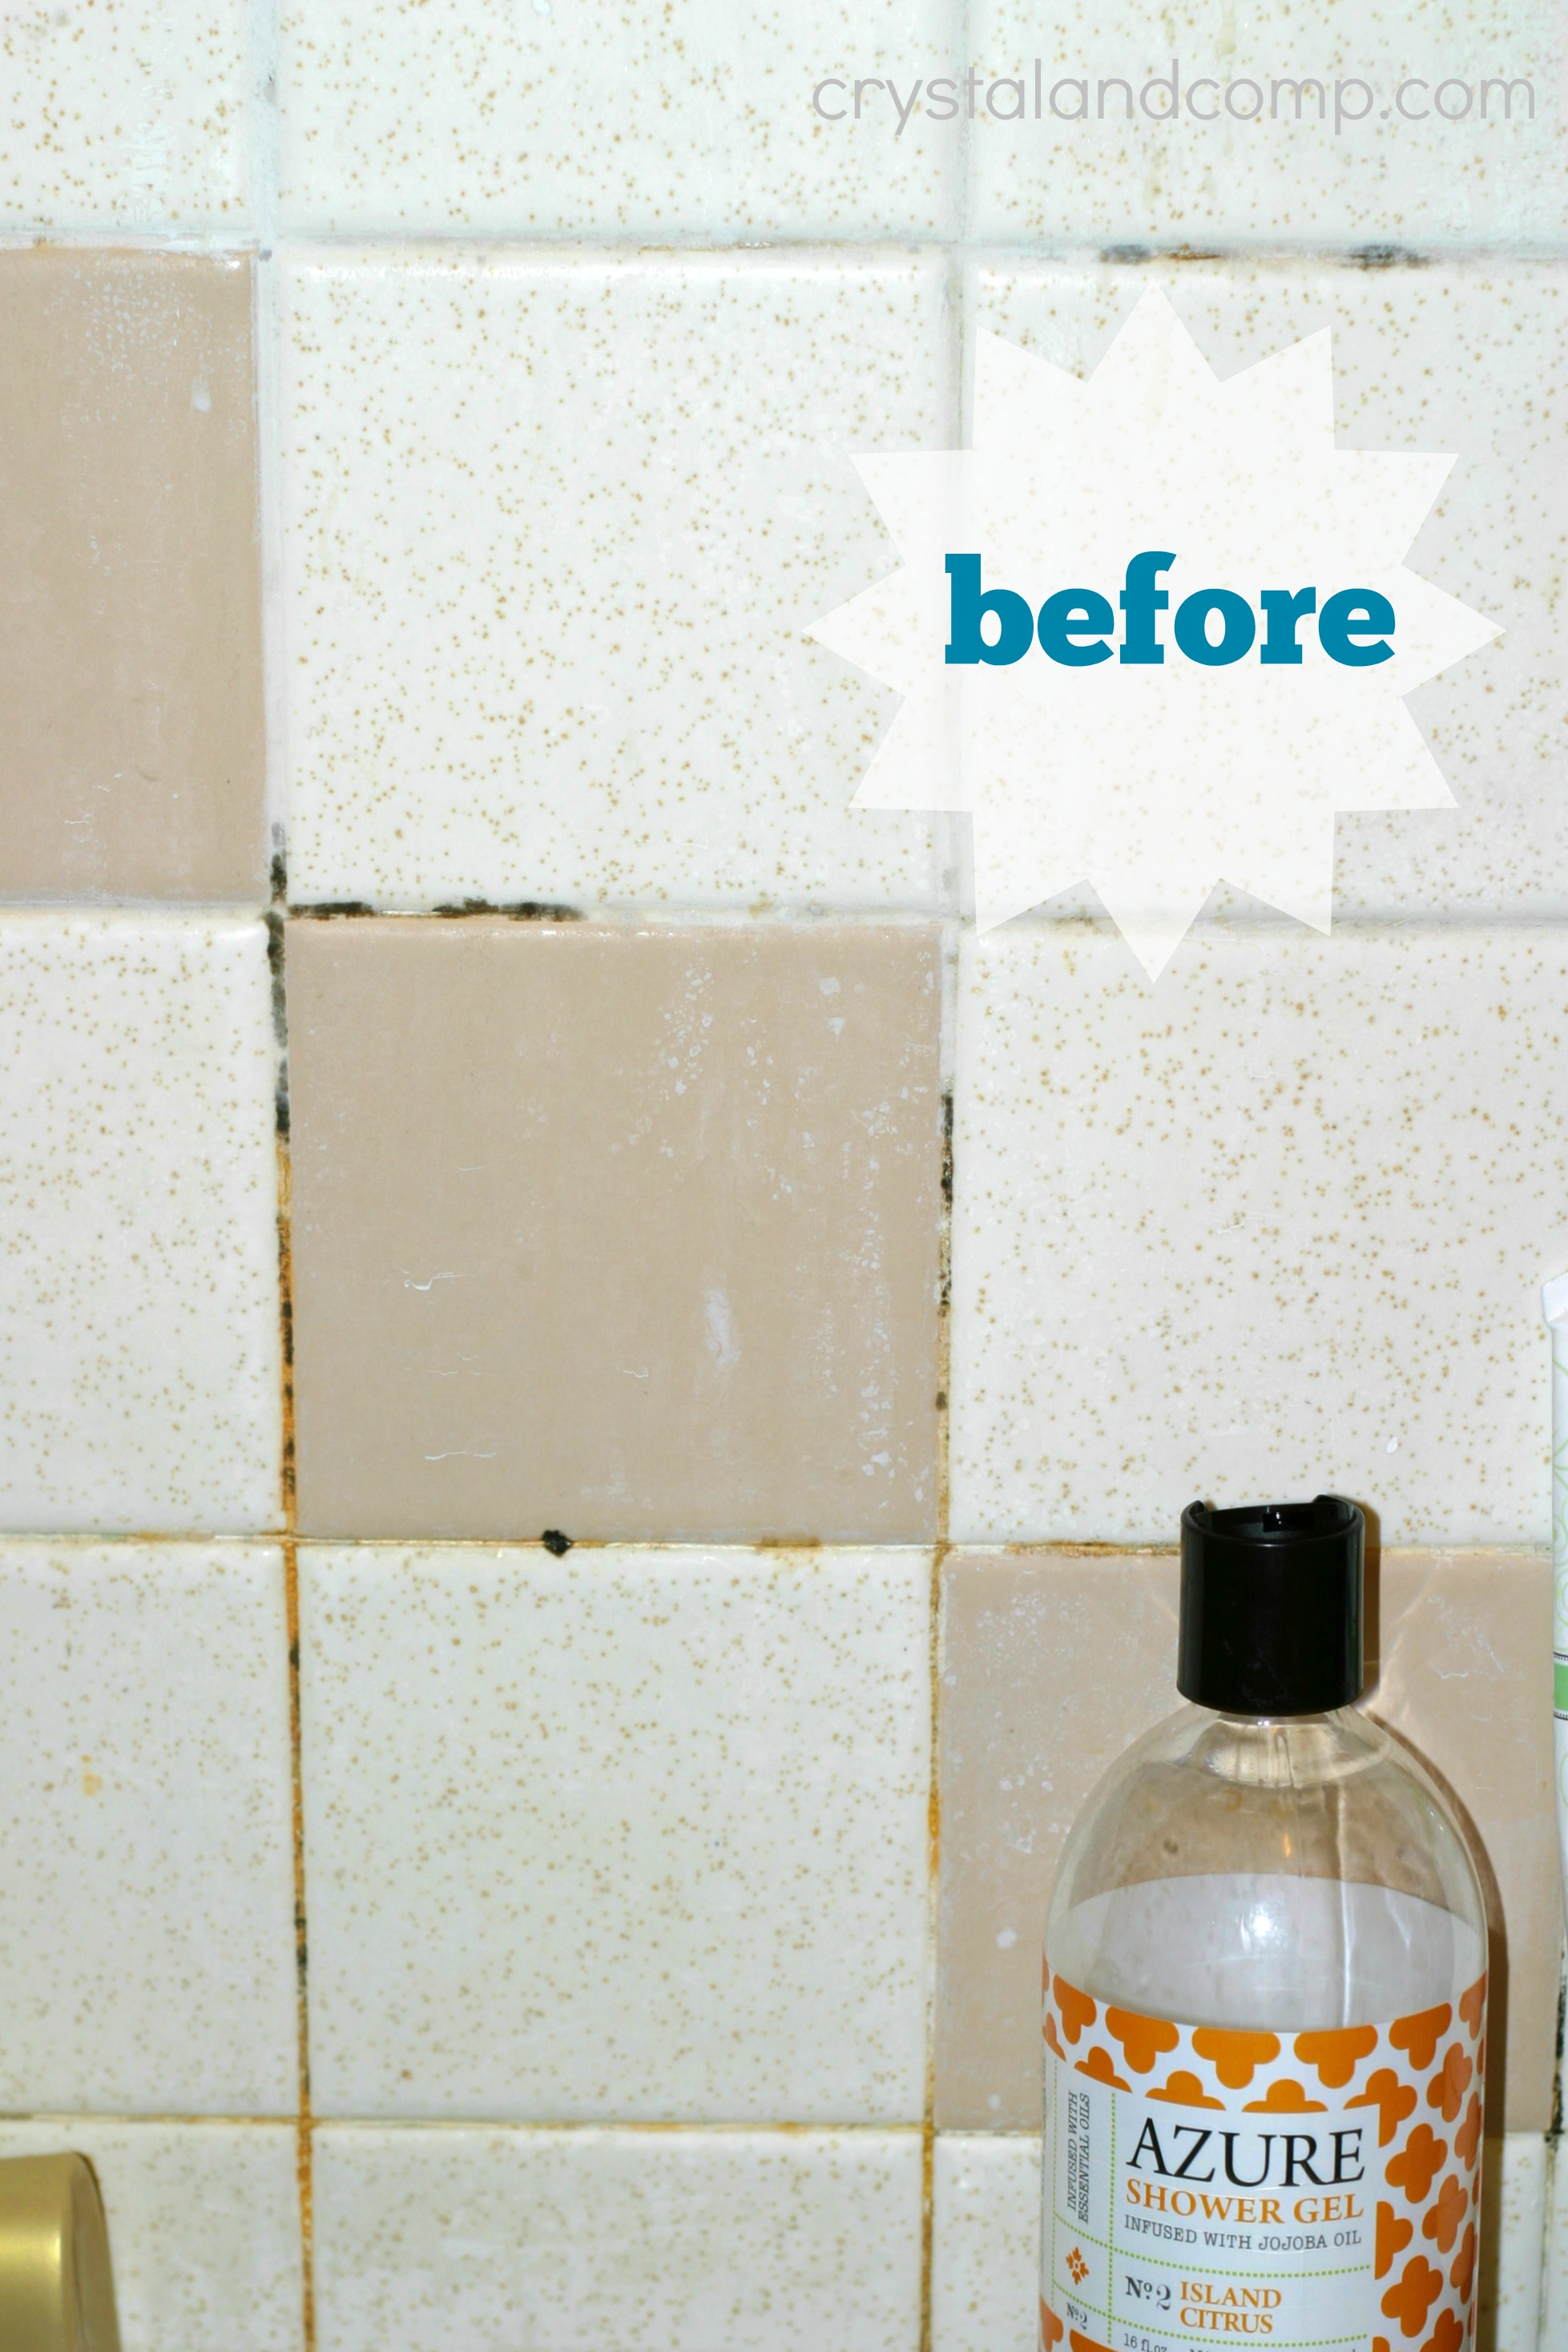 Mold In My Shower store bought bathroom mold cleaner | crystalandcomp